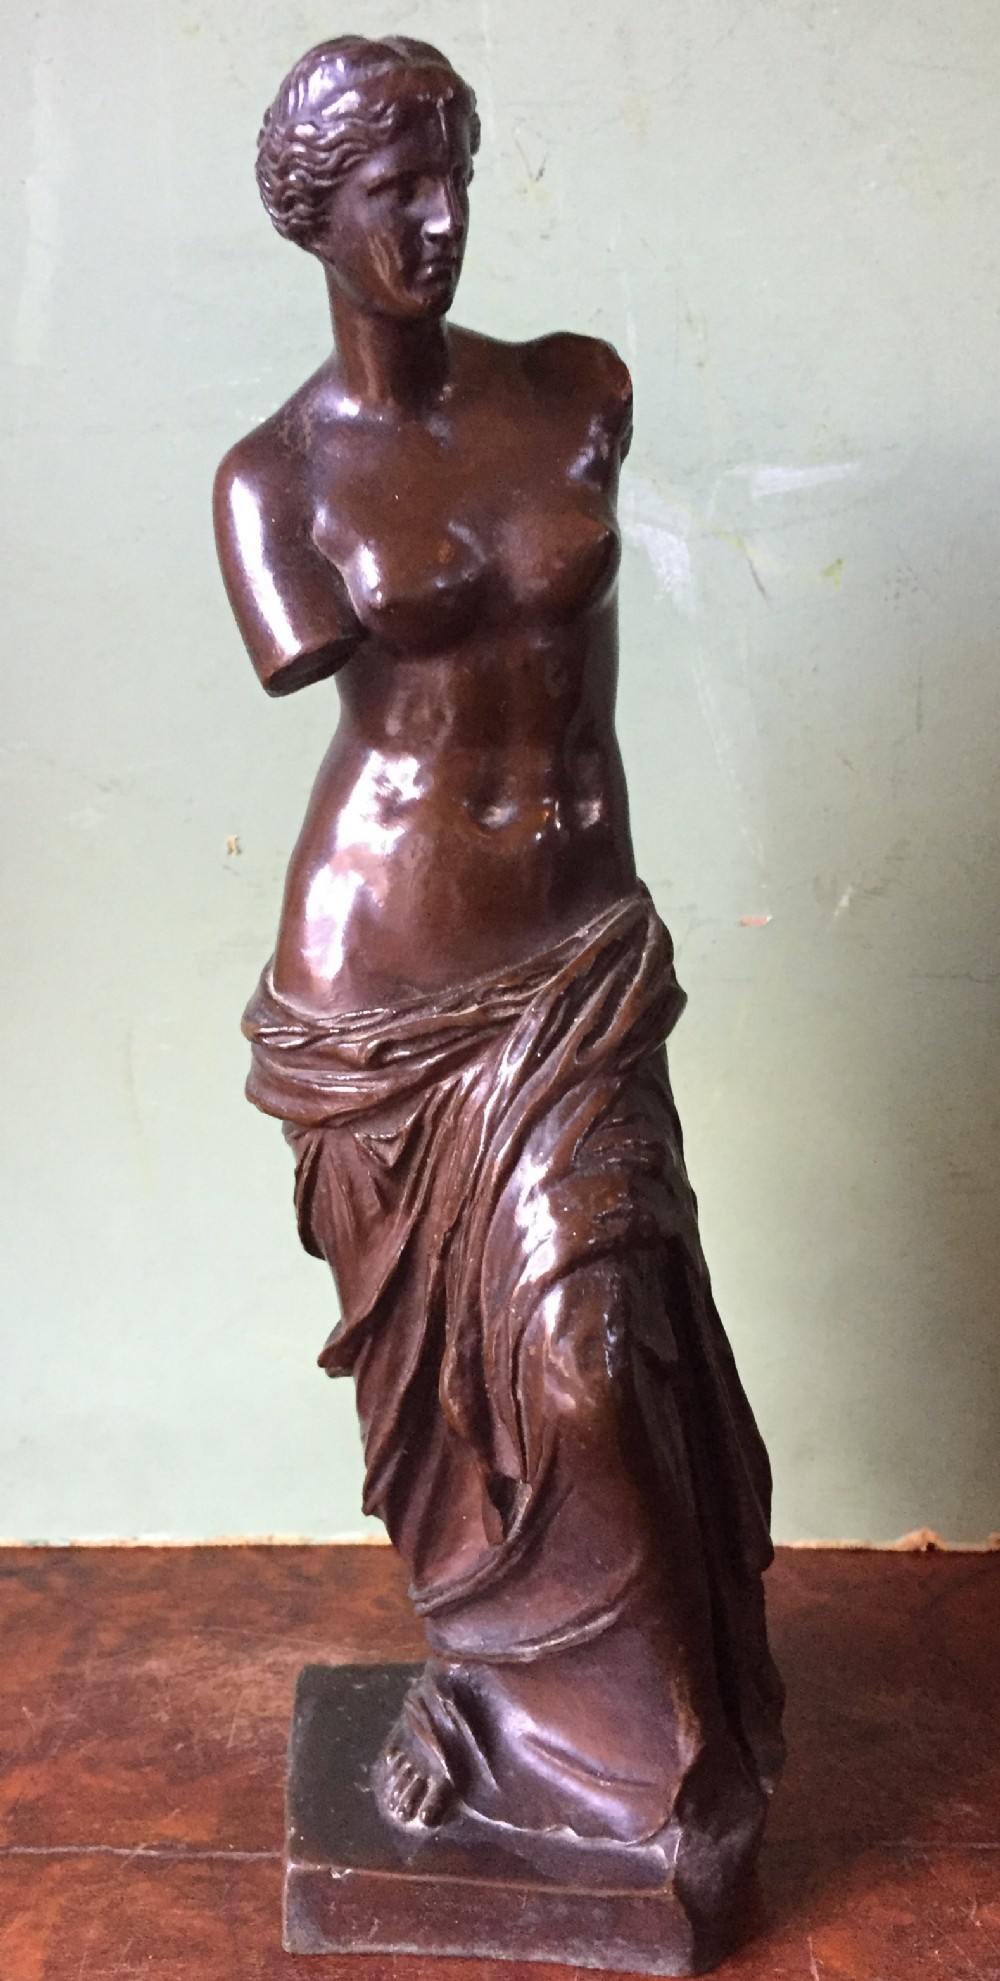 late c19th 'grand tour' souvenir bronze reduction of the 'venus di milo' by ferdinand barbedienne foundry paris